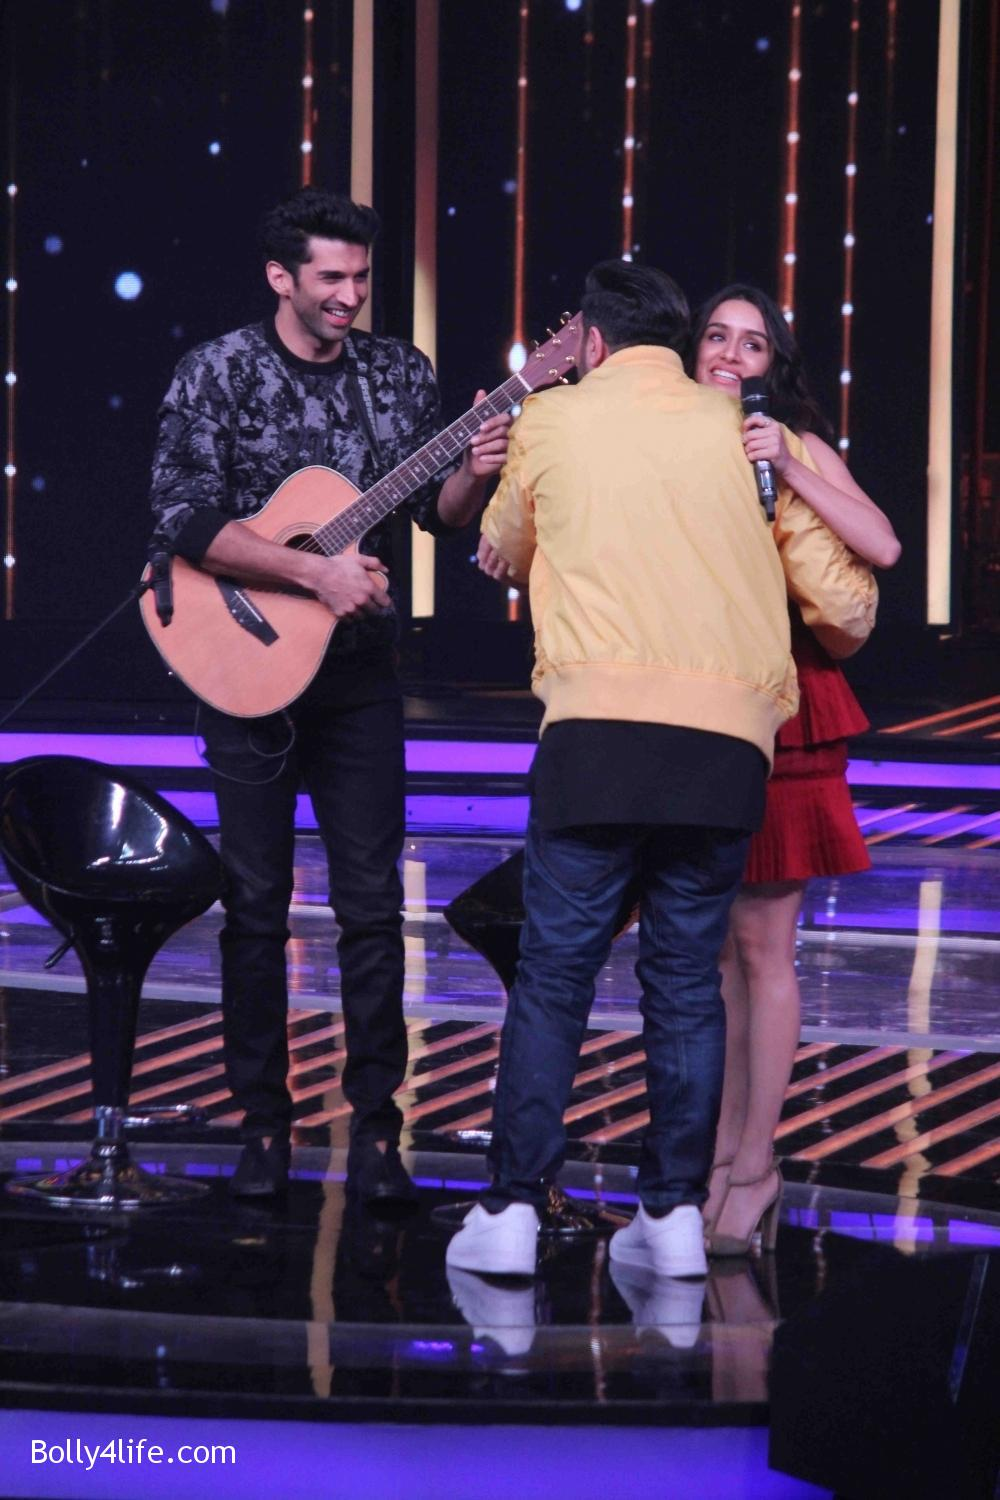 Aditya-Roy-Kapur-and-Shraddha-Kapoor-during-the-promotion-of-film-Ok-Jaanu-on-the-sets-Star-Plus-singing-reality-show-Dil-Hai-Hindustani-2.jpg